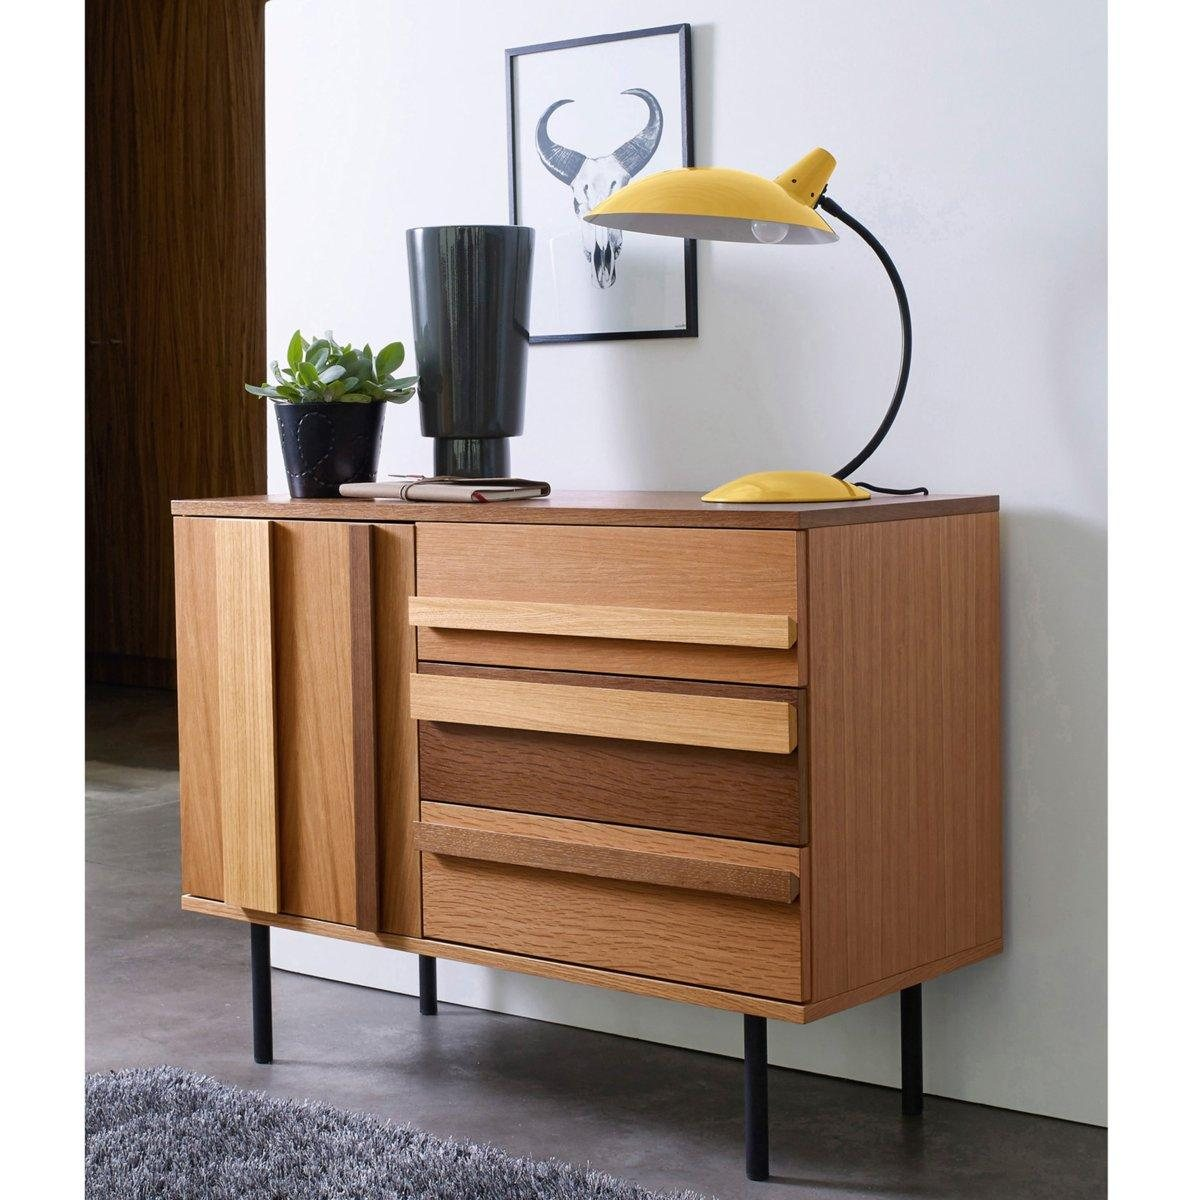 soldes buffet la redoute buffet watford la redoute interieurs ventes pas. Black Bedroom Furniture Sets. Home Design Ideas